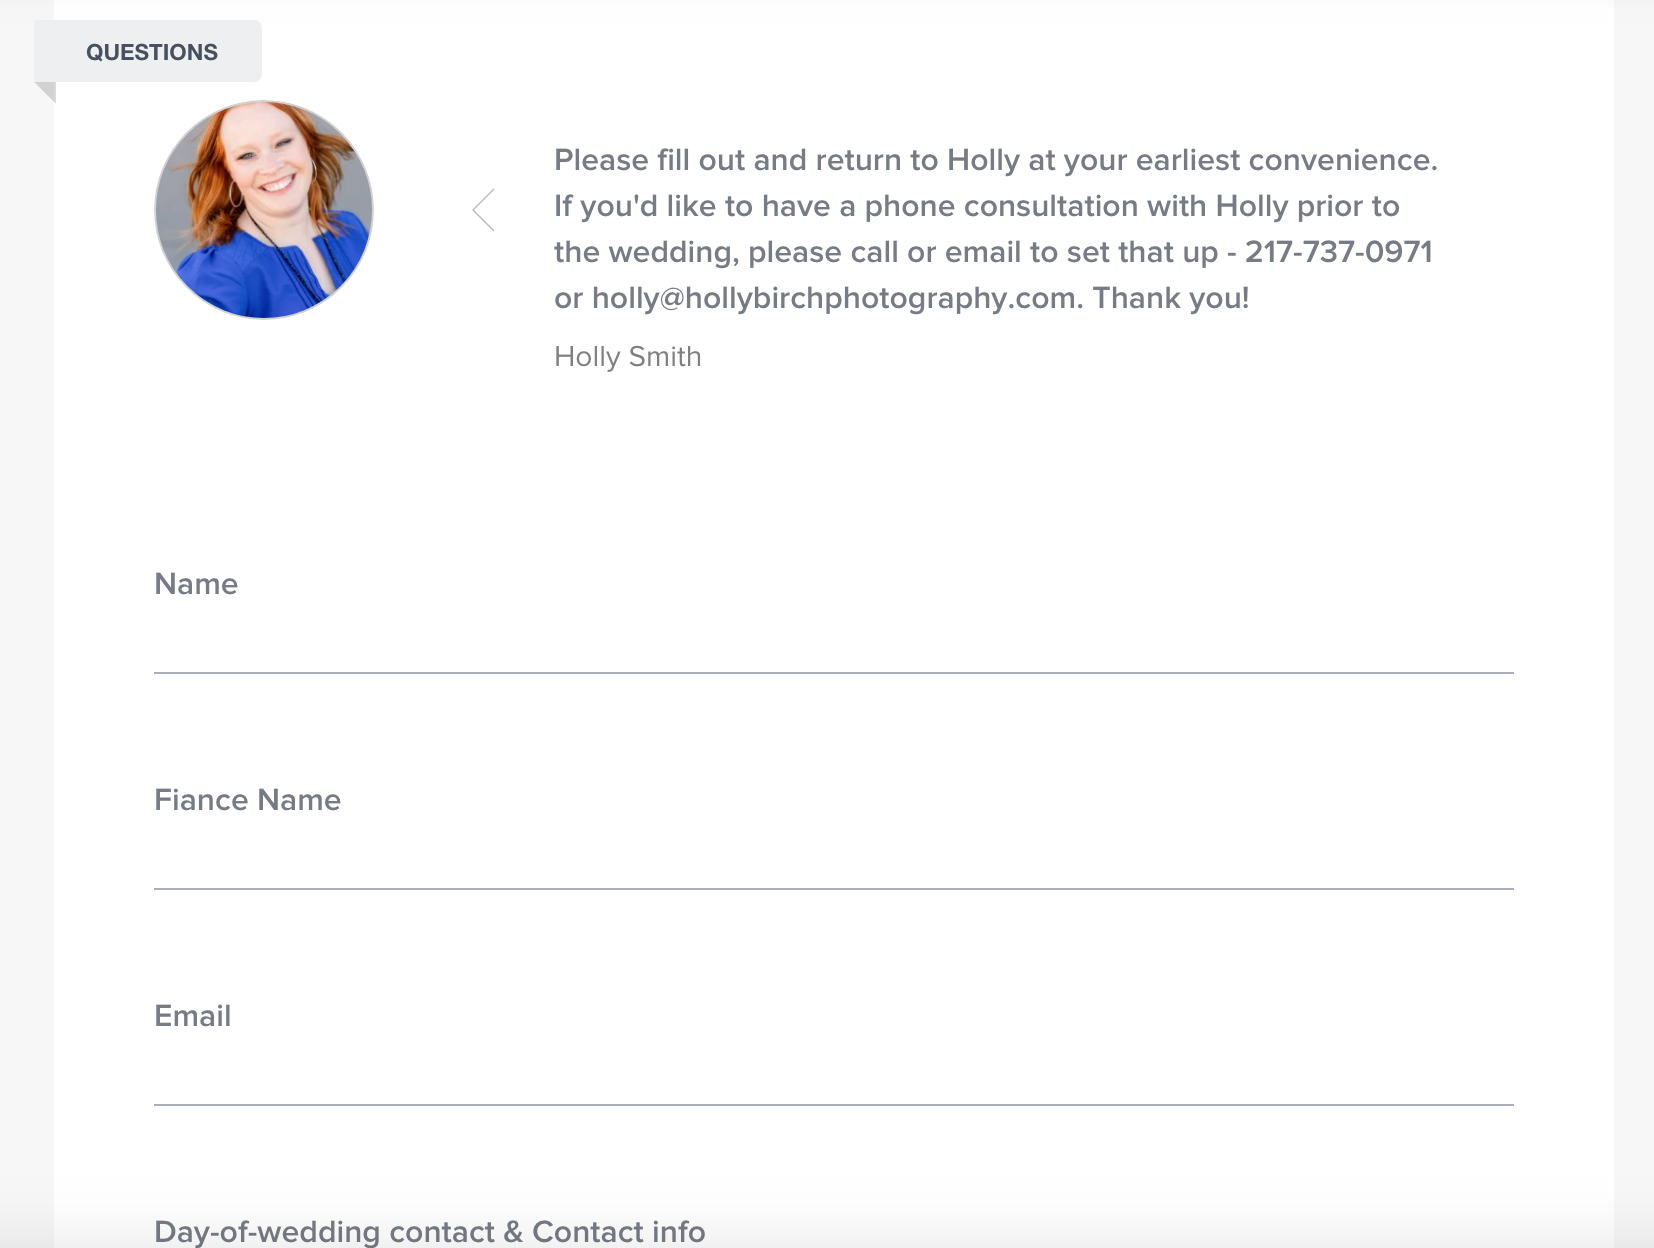 Honeybook makes client questionnaires easy and fast